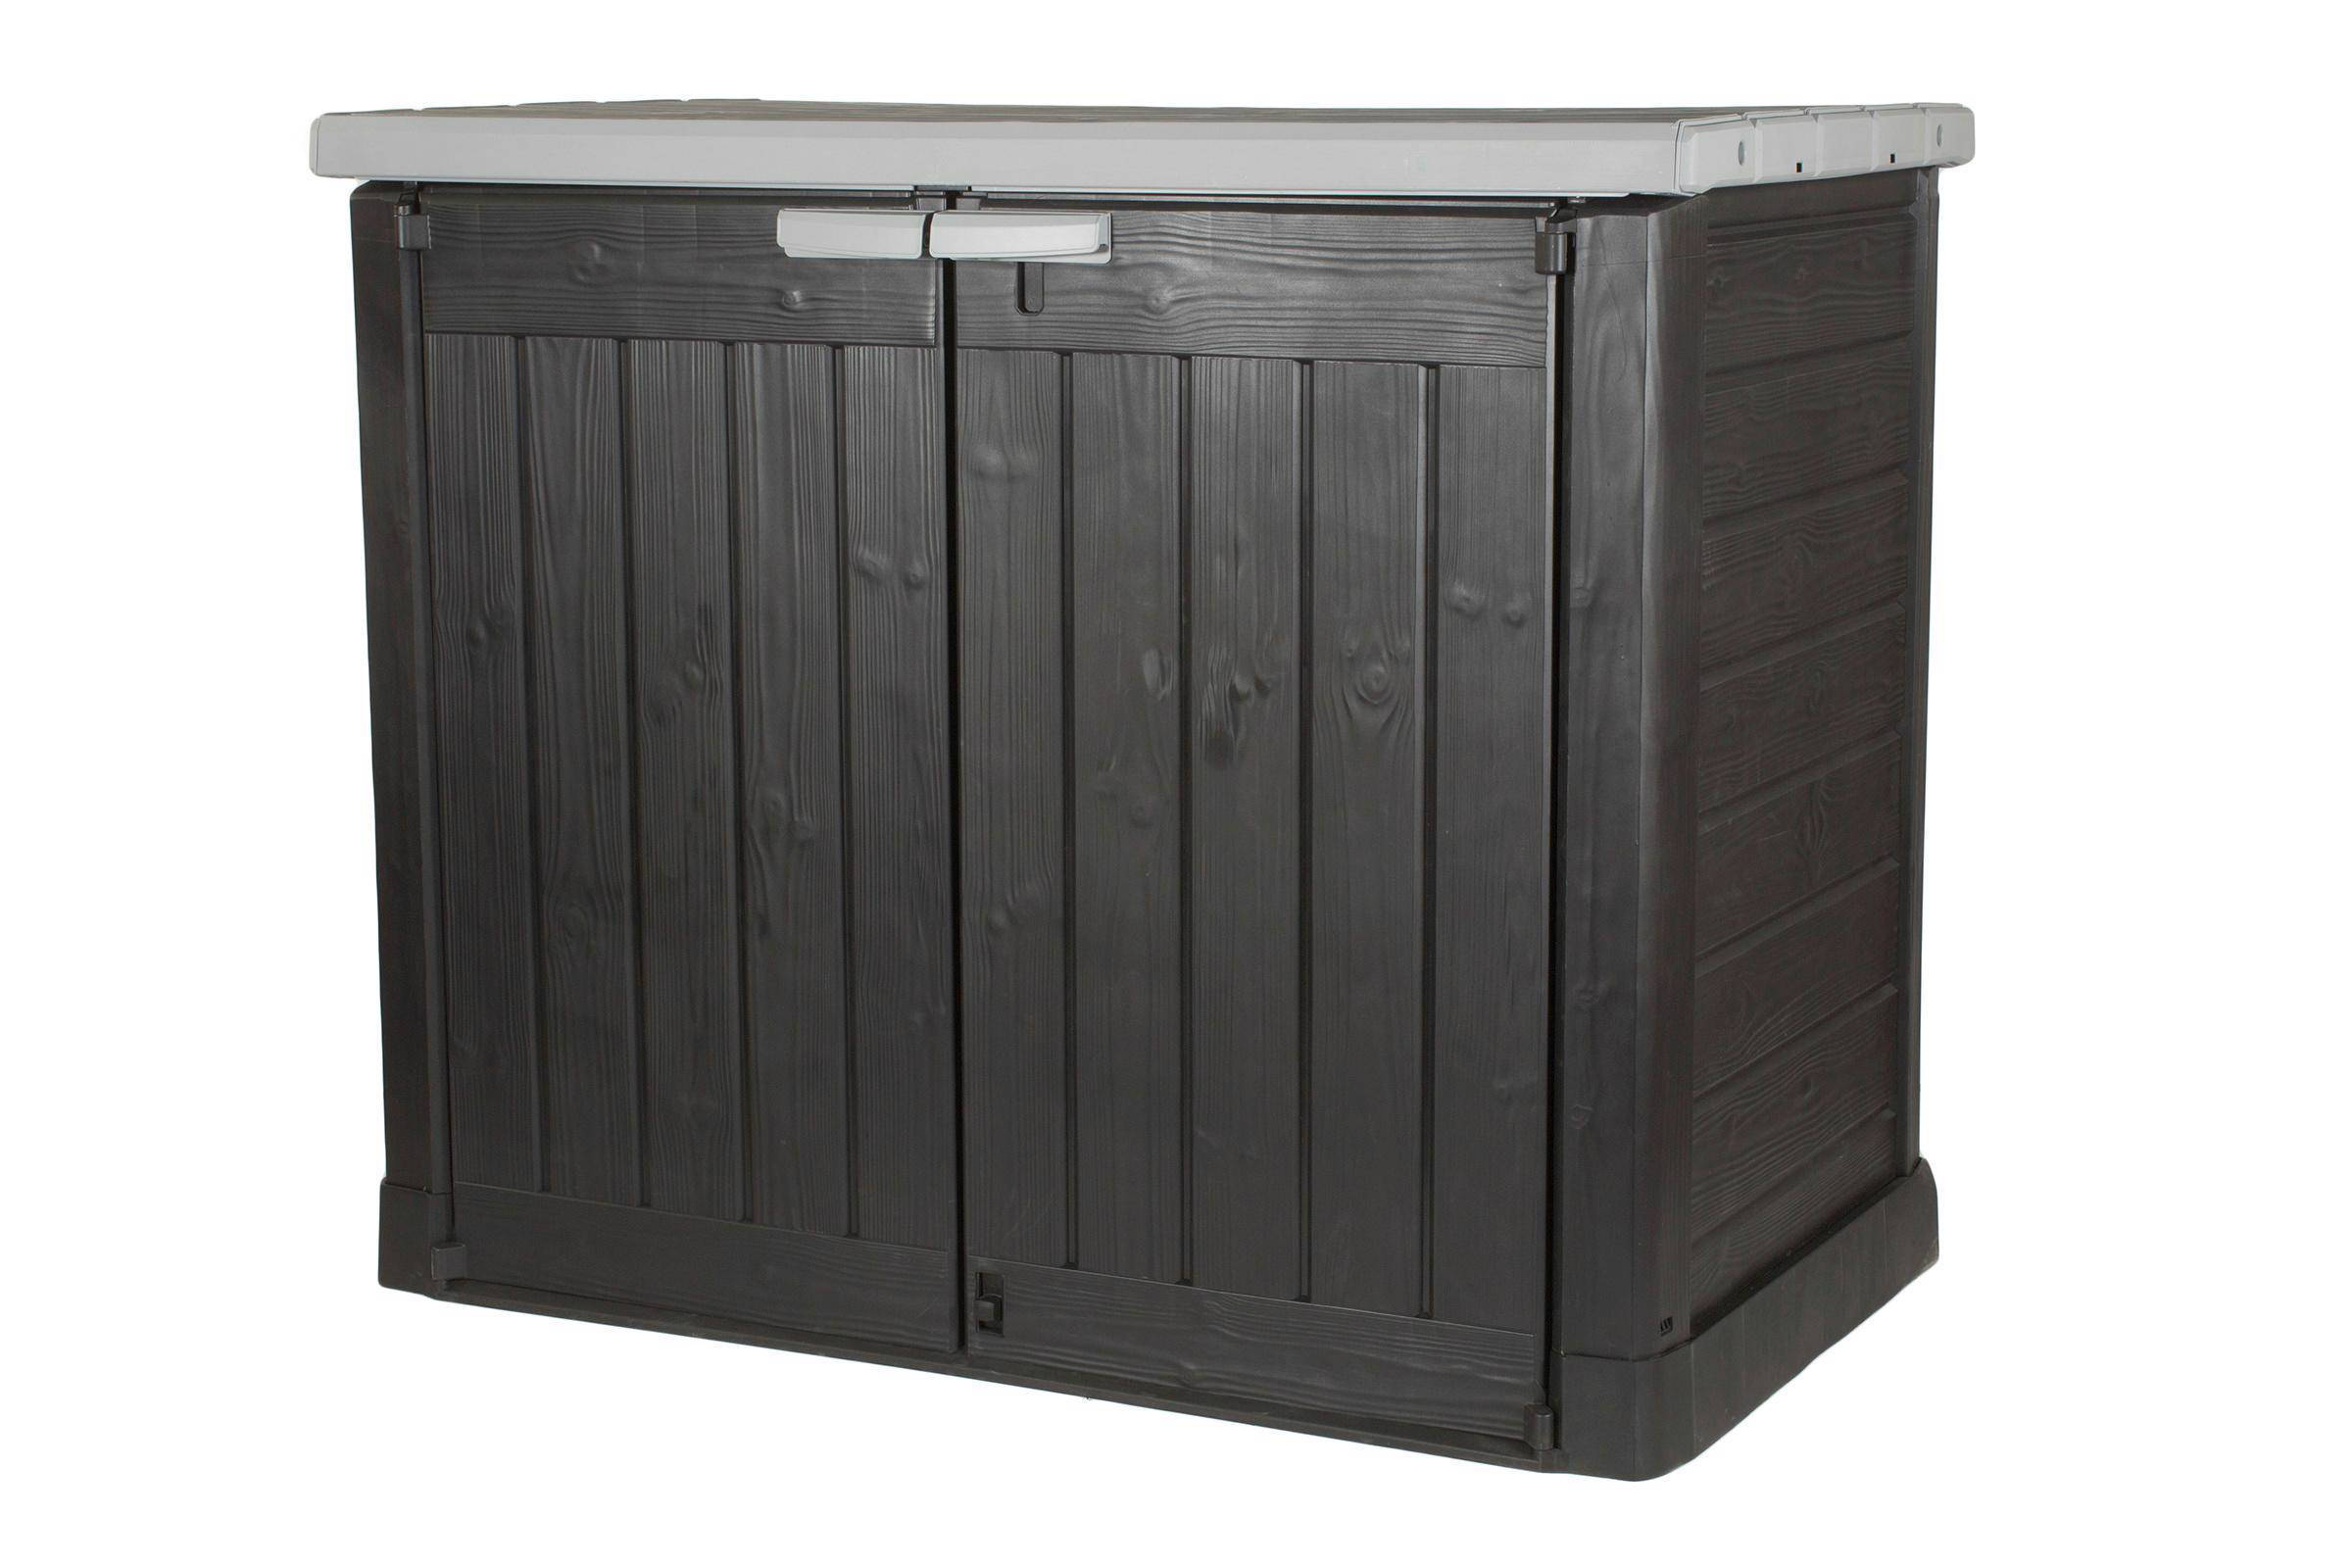 Keter Lounge Shed Opbergbox Aanbieding Store It Out Loungeshed Opbergbox Bxdxh 145 5x82x119 Cm